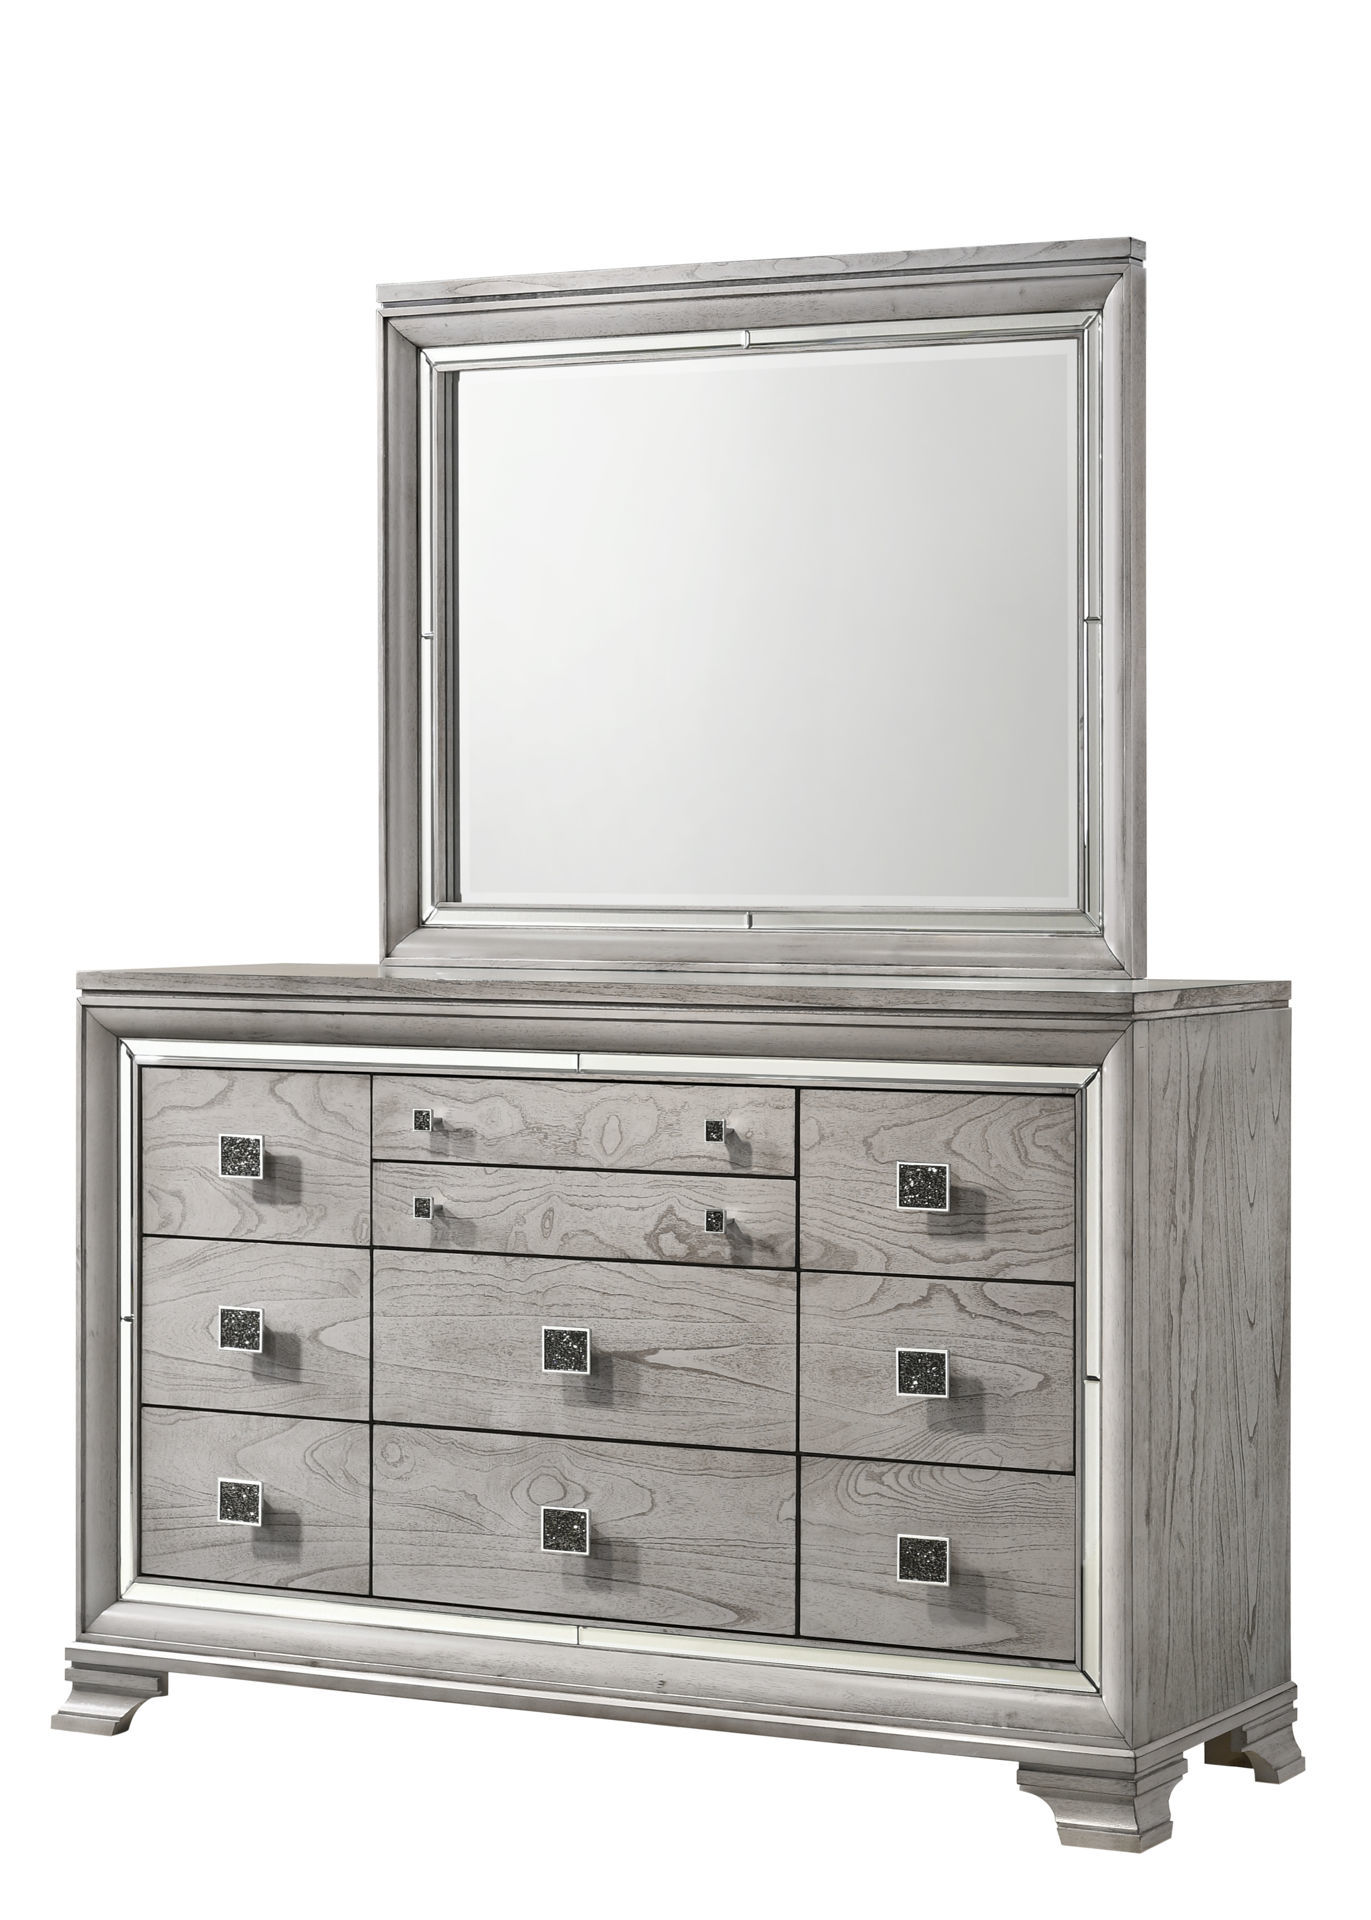 Picture of SKY TOWER DRESSER